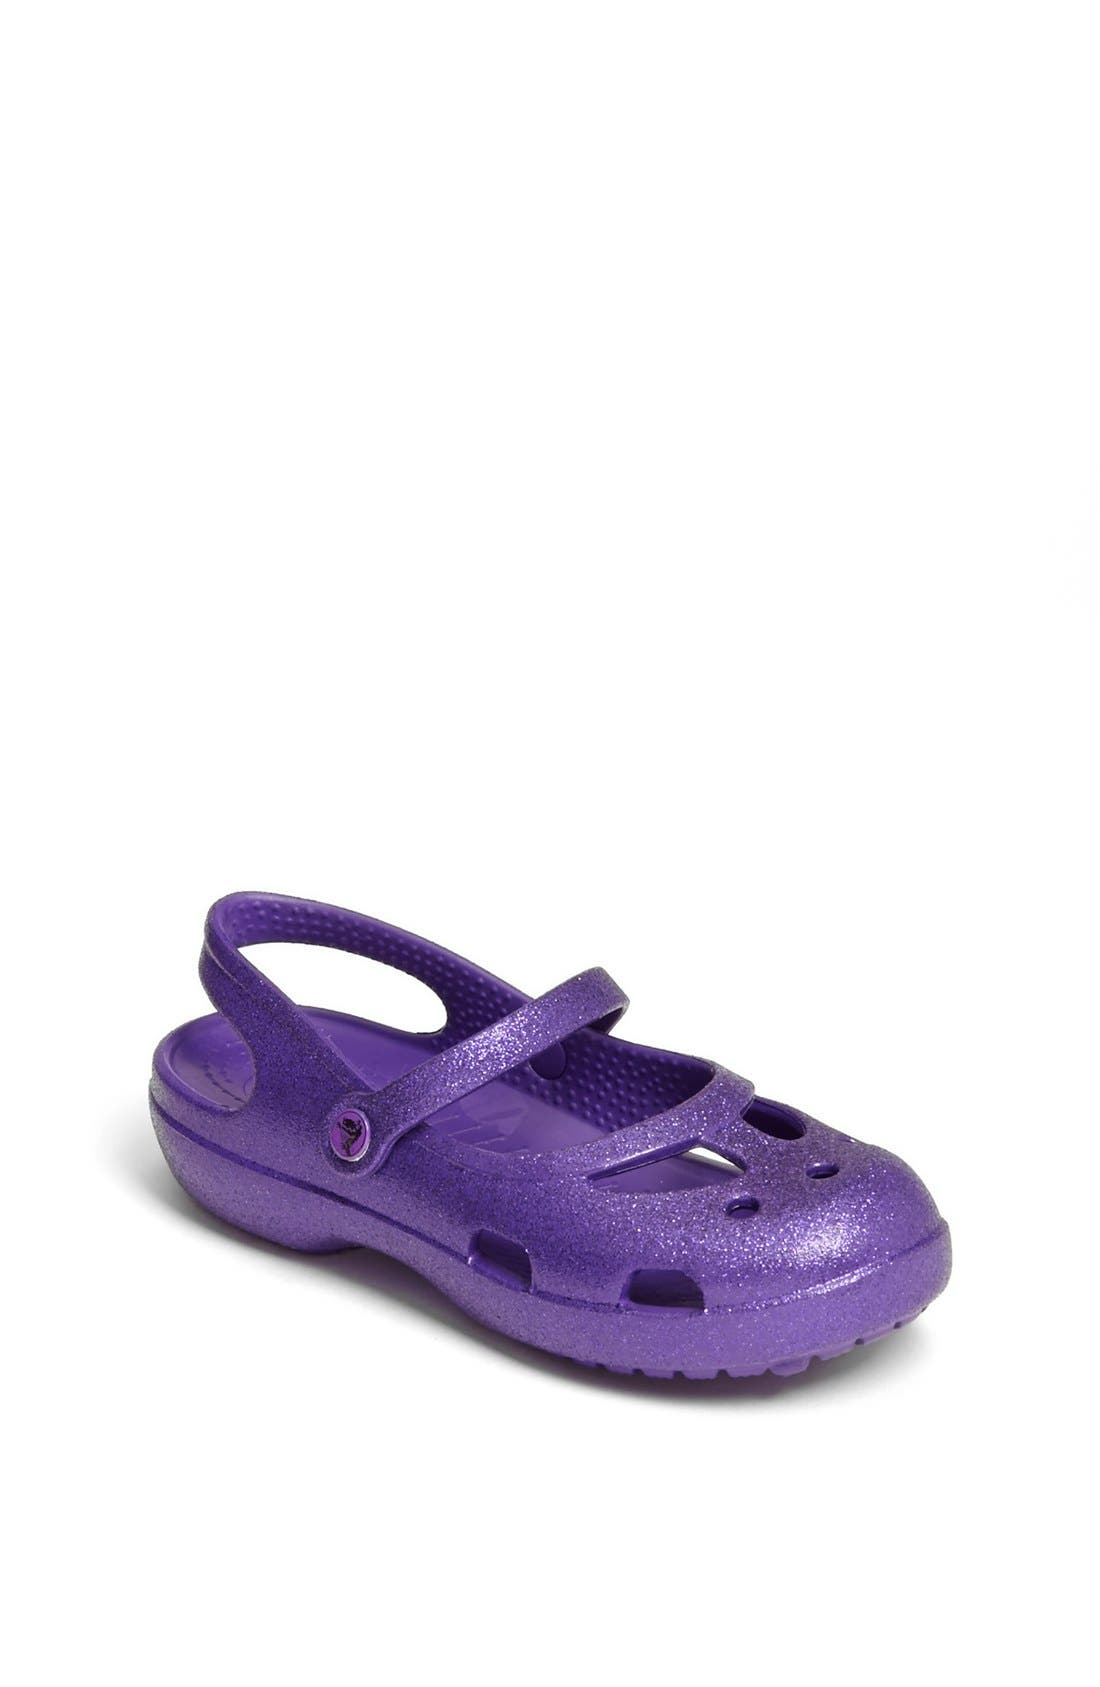 Alternate Image 1 Selected - CROCS™ 'Shayna' Sandal (Baby, Walker, Toddler & Little Kid)